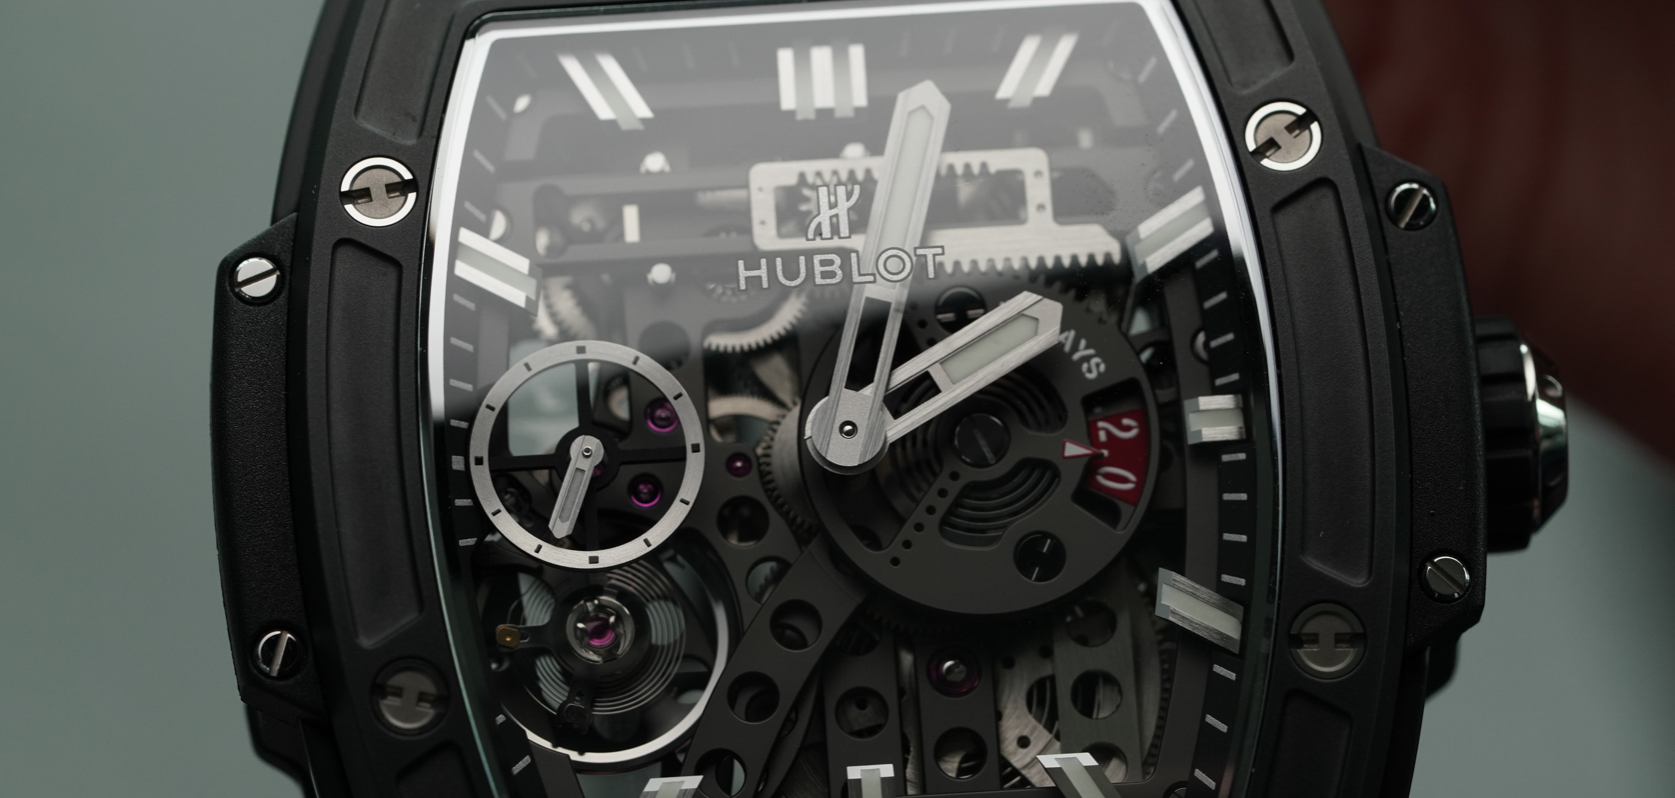 IN-DEPTH: The history of the Hublot MECA-10 Movement